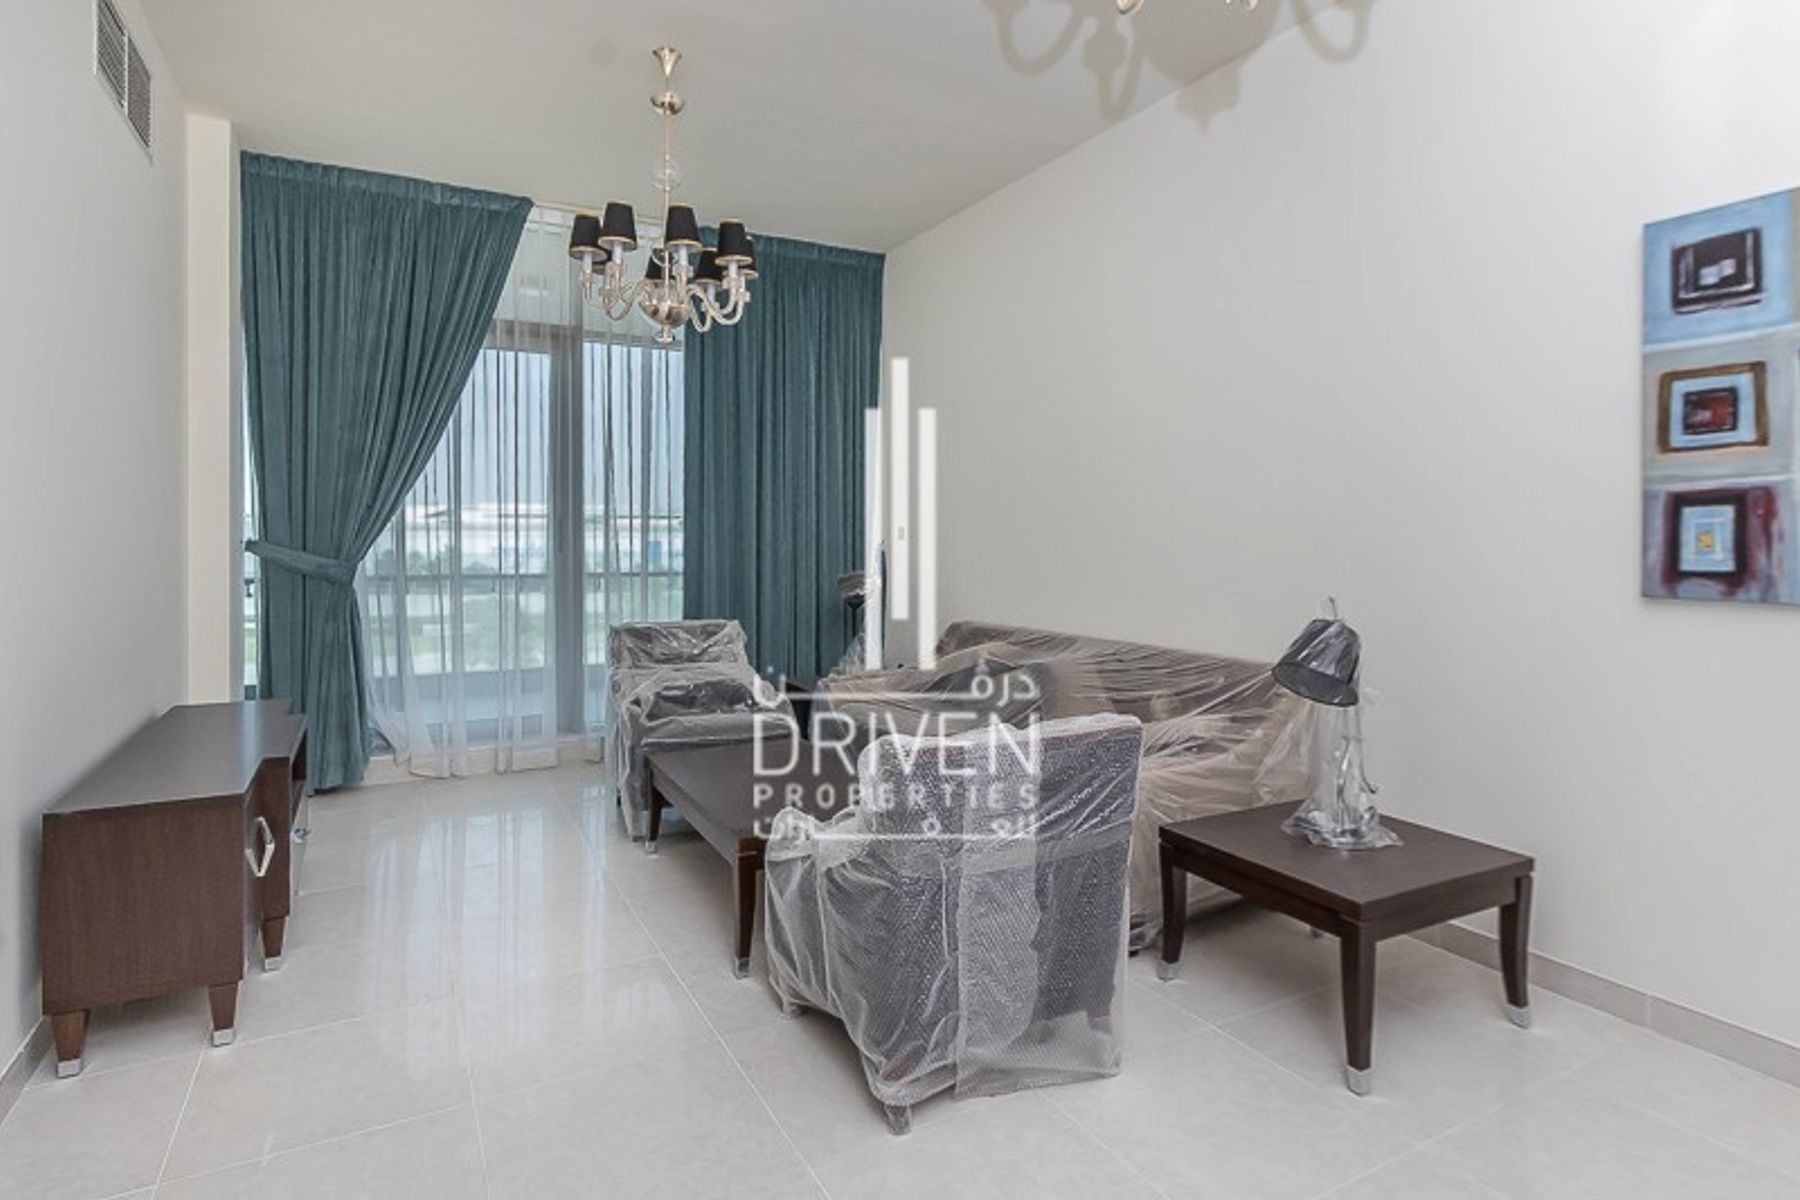 2 Bed with 2 Balconies | Affordable price